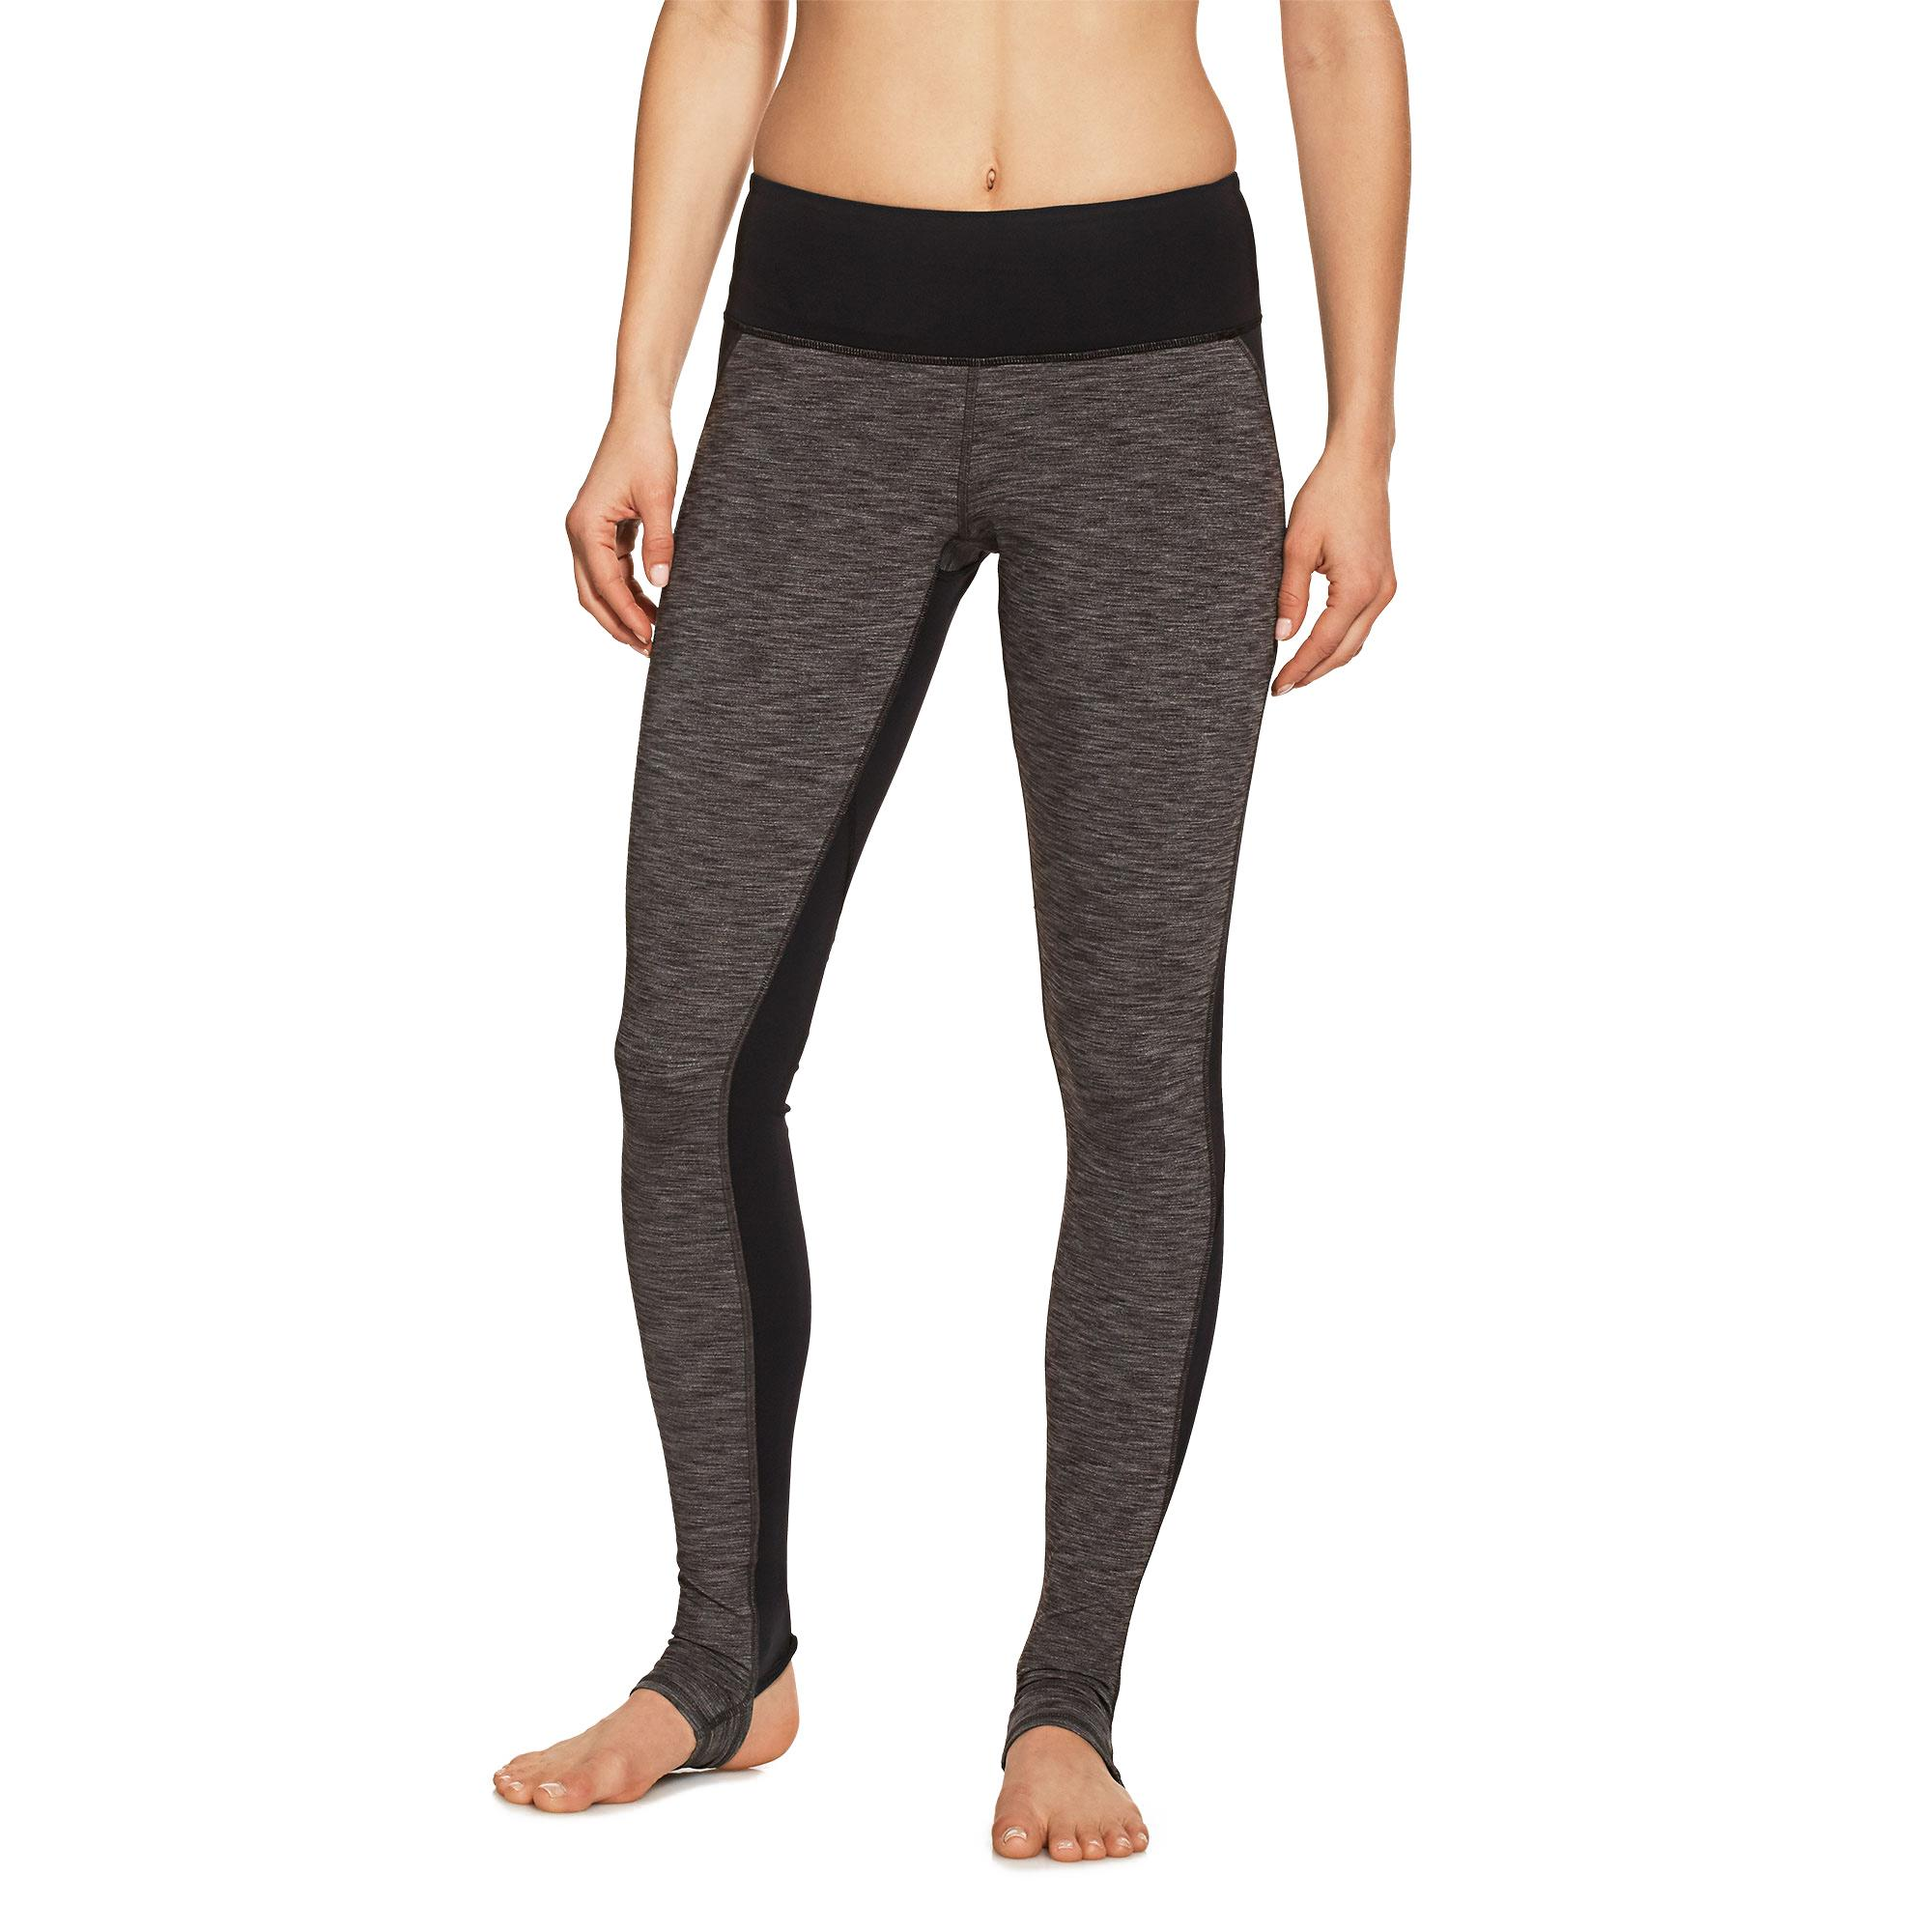 Amazon Com Gaiam Women S Follow My Line Legging Sports